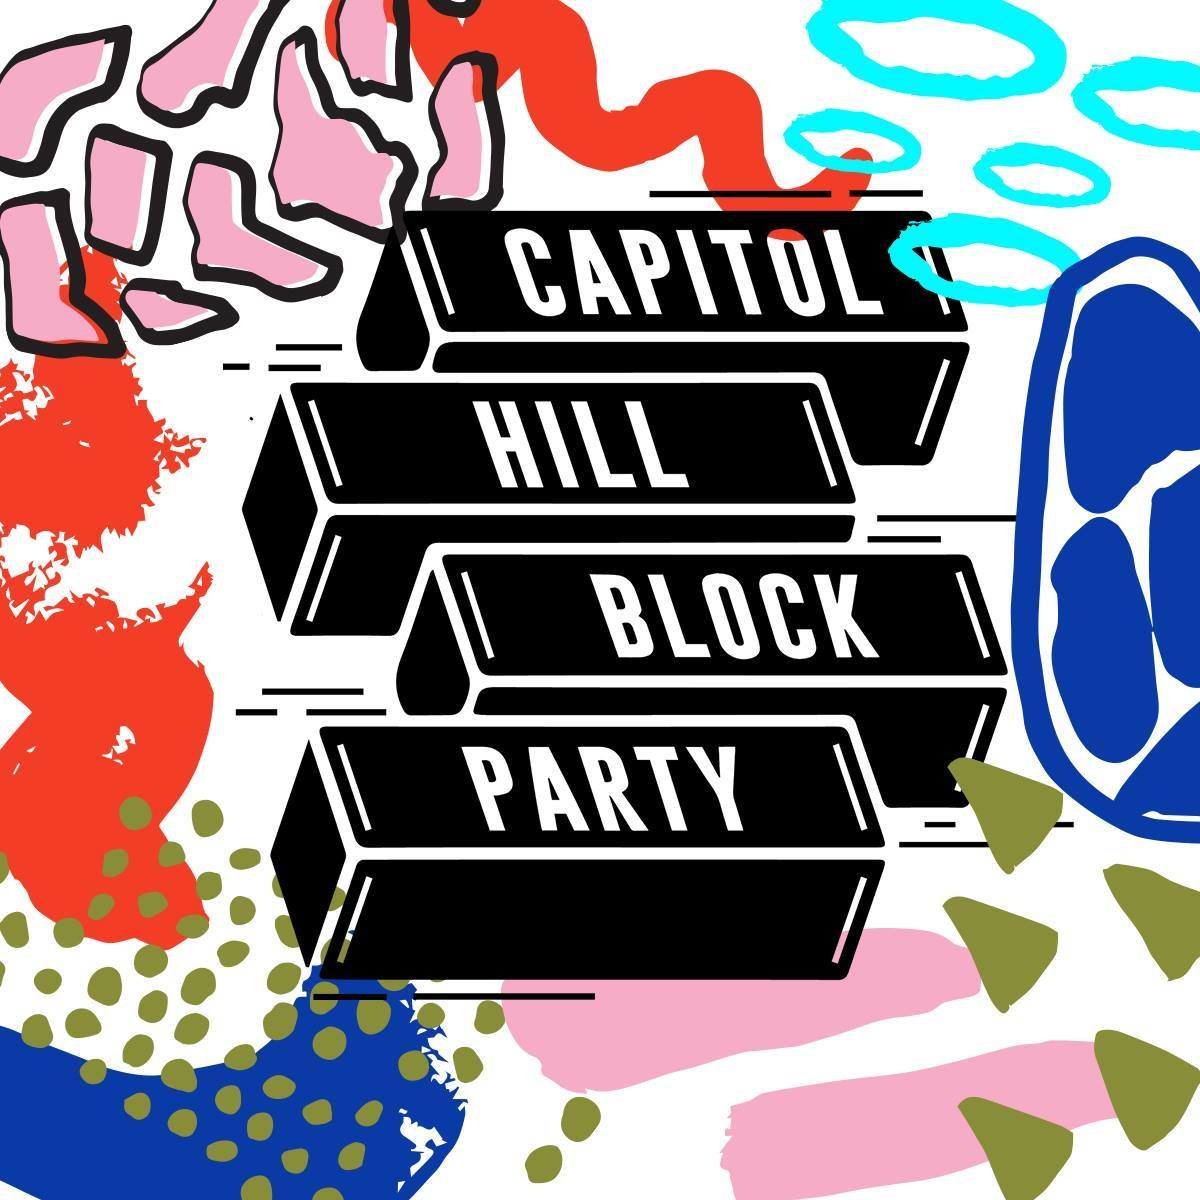 Capitol Hill Block Party - Best Music Festivals in Seattle, Washington 2020